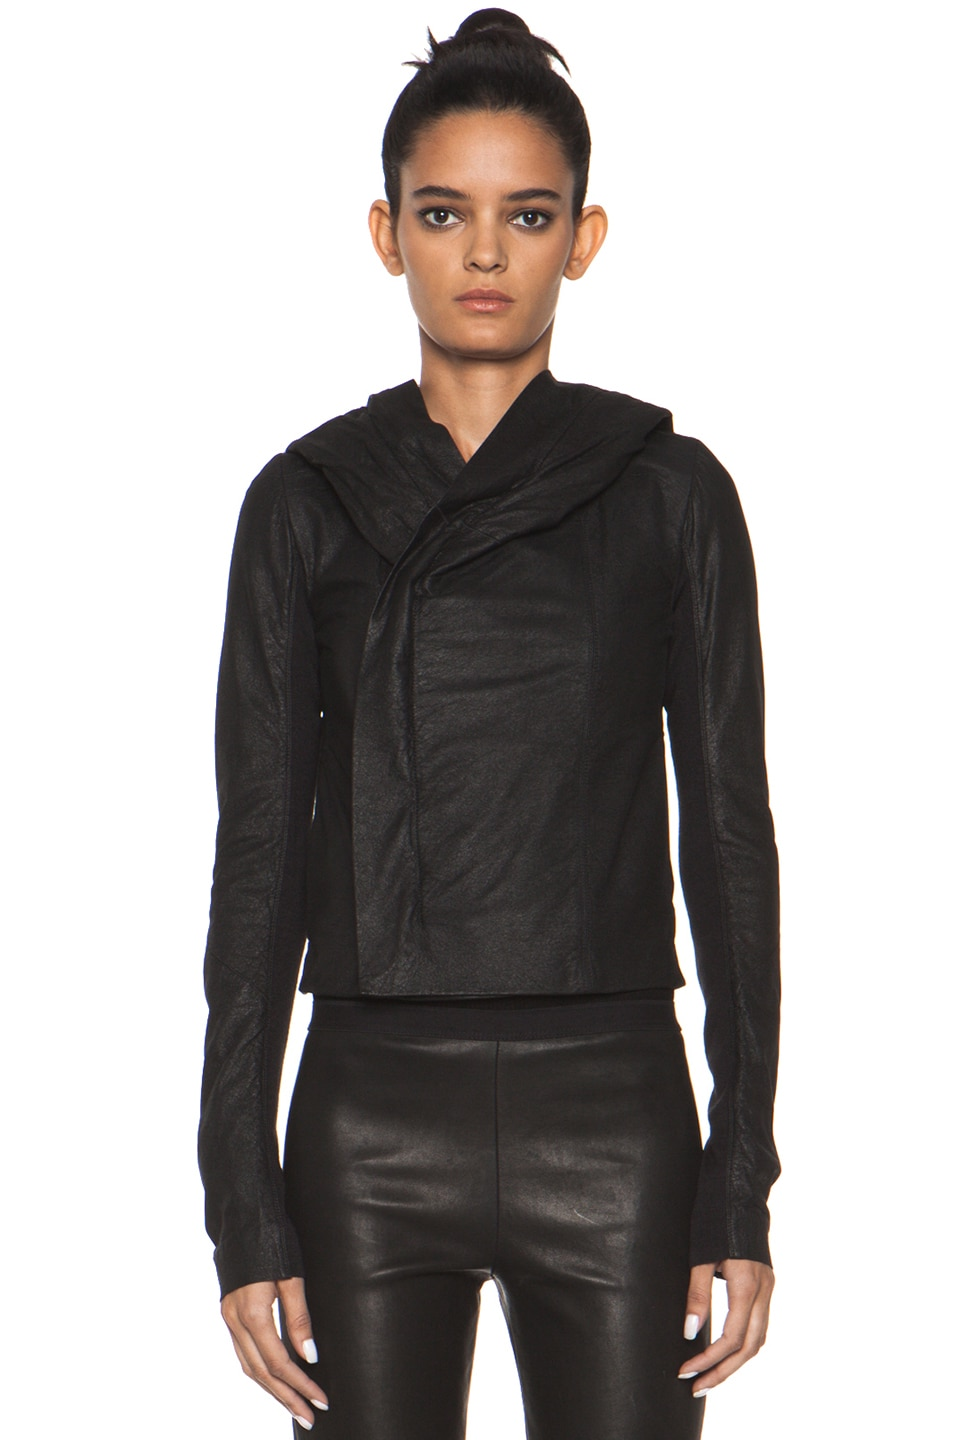 Image 2 of Rick Owens Leather Giacca Pelle Hooded Jacket in Black